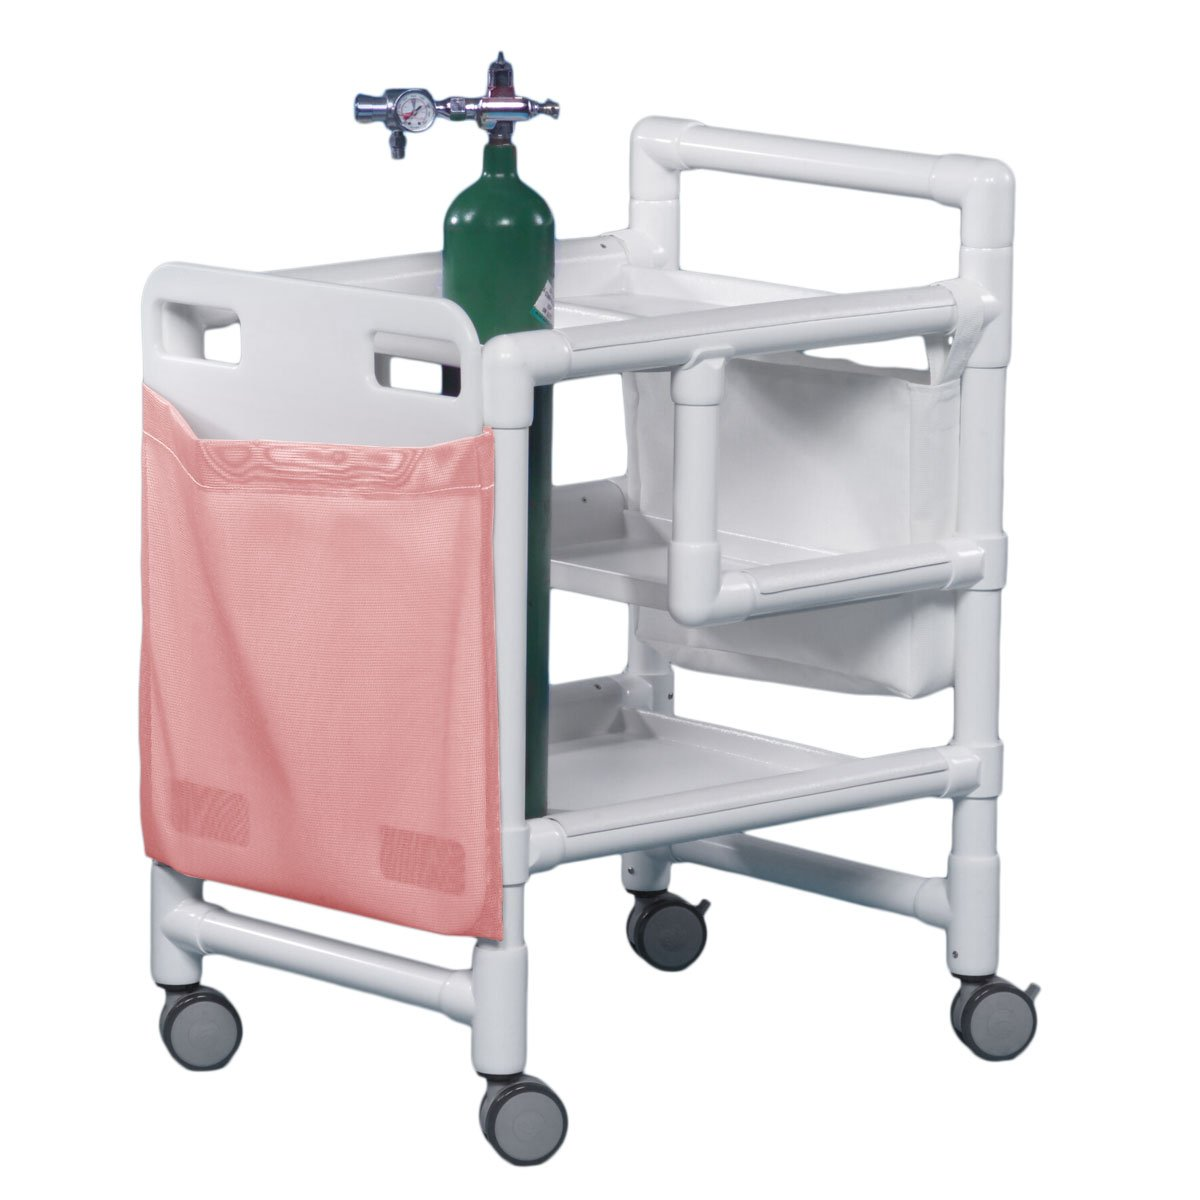 Optional Cover For Emergency Cart Sure Chek Pink Camo